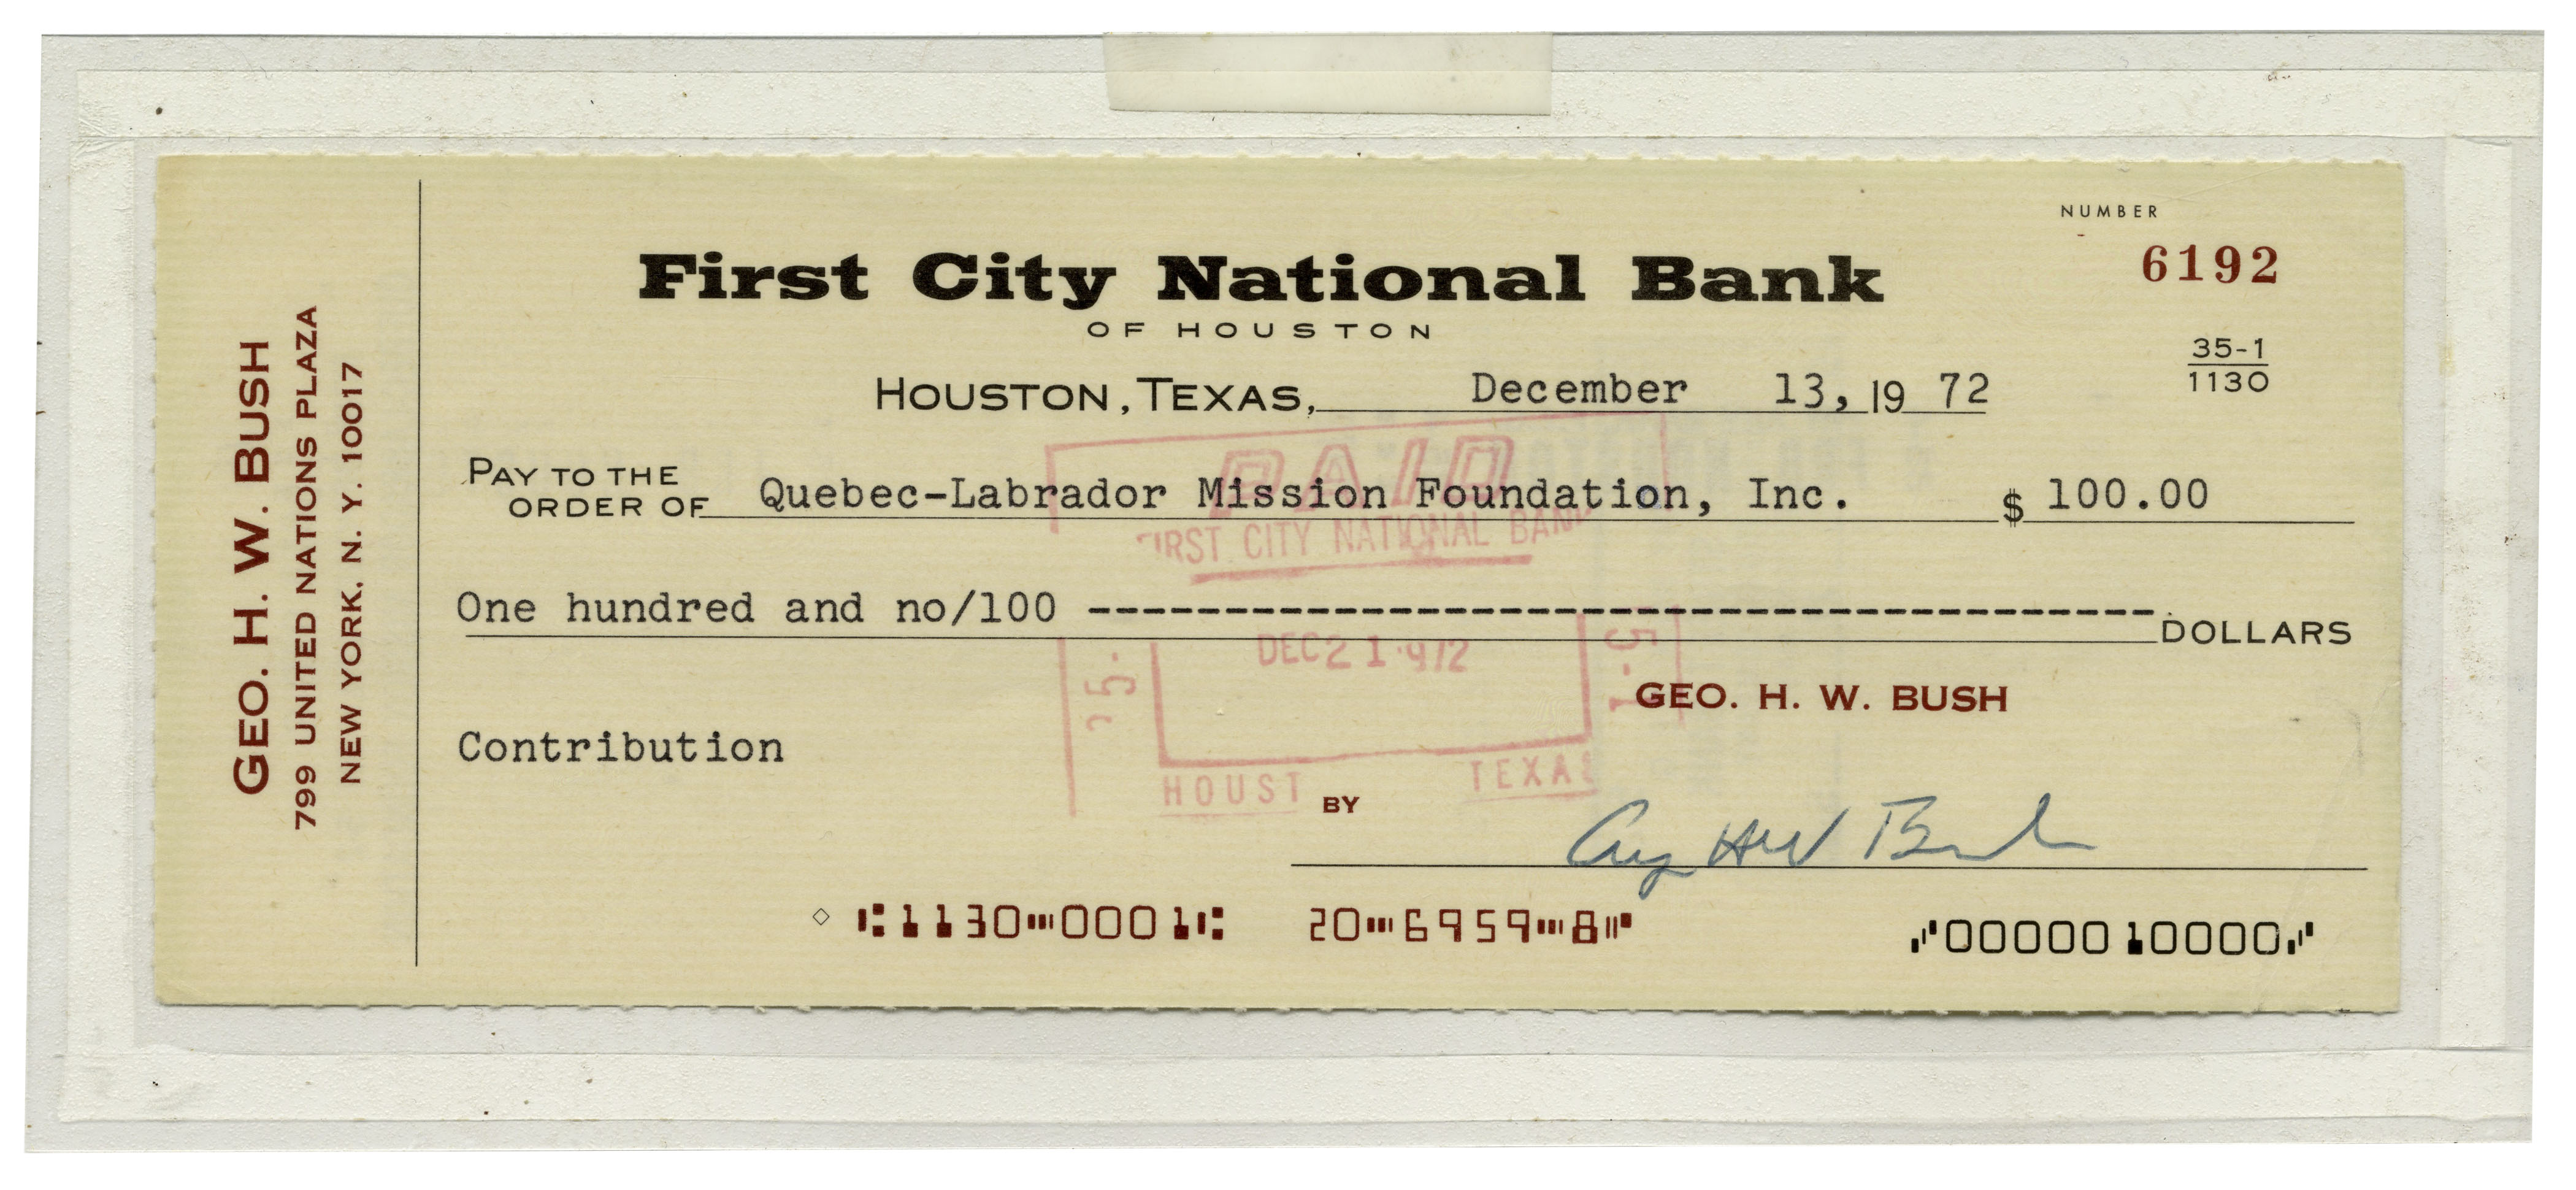 George Bush Autograph George H.W. Bush Signed Check -- Bush Donates to a Charitable Mission Foundation